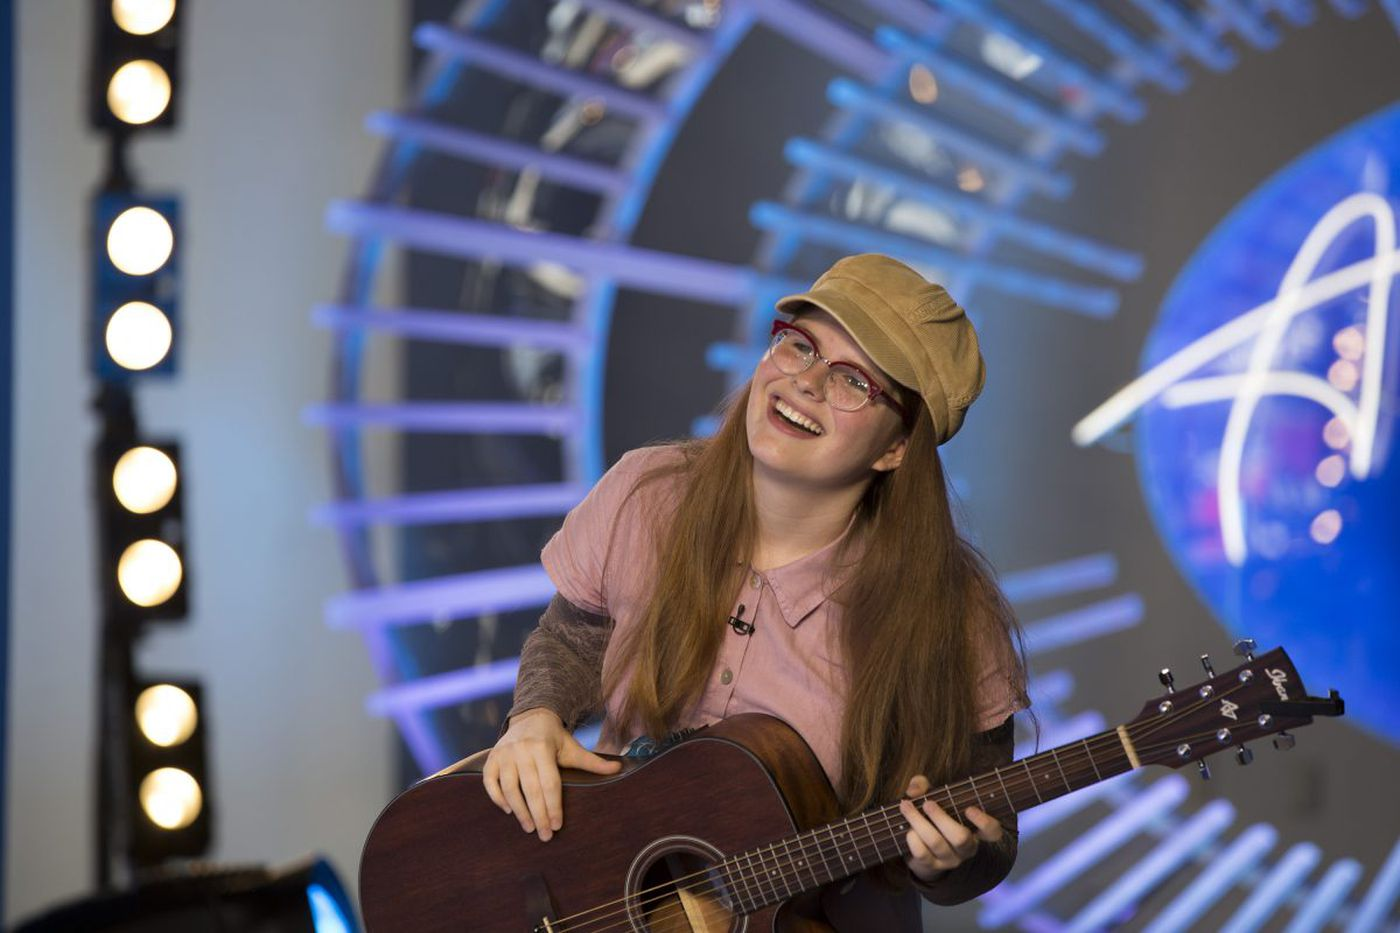 Philly 'American Idol' contestants step into spotlight on Sunday, Monday as part of Top 24